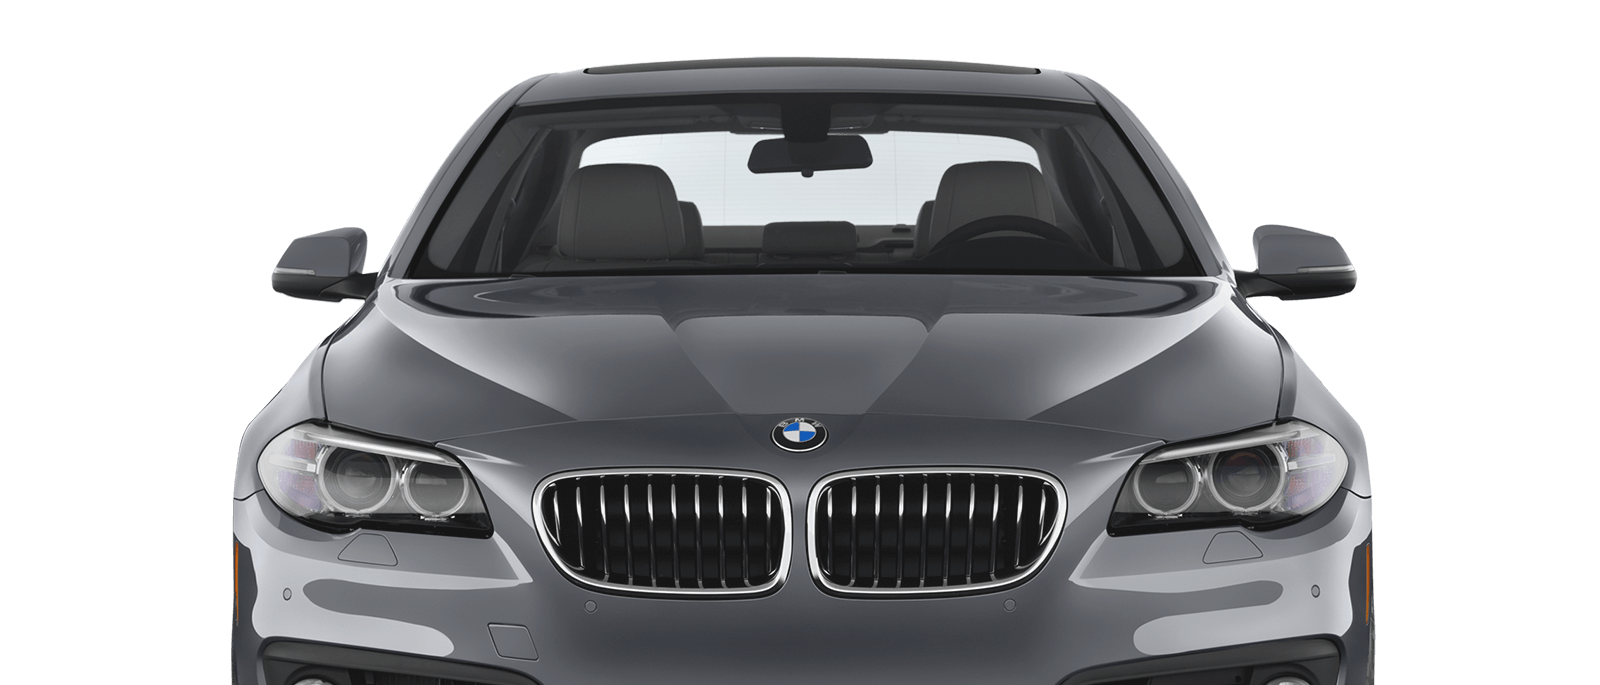 bmw 528i car rental exotic car collection by enterprise. Black Bedroom Furniture Sets. Home Design Ideas